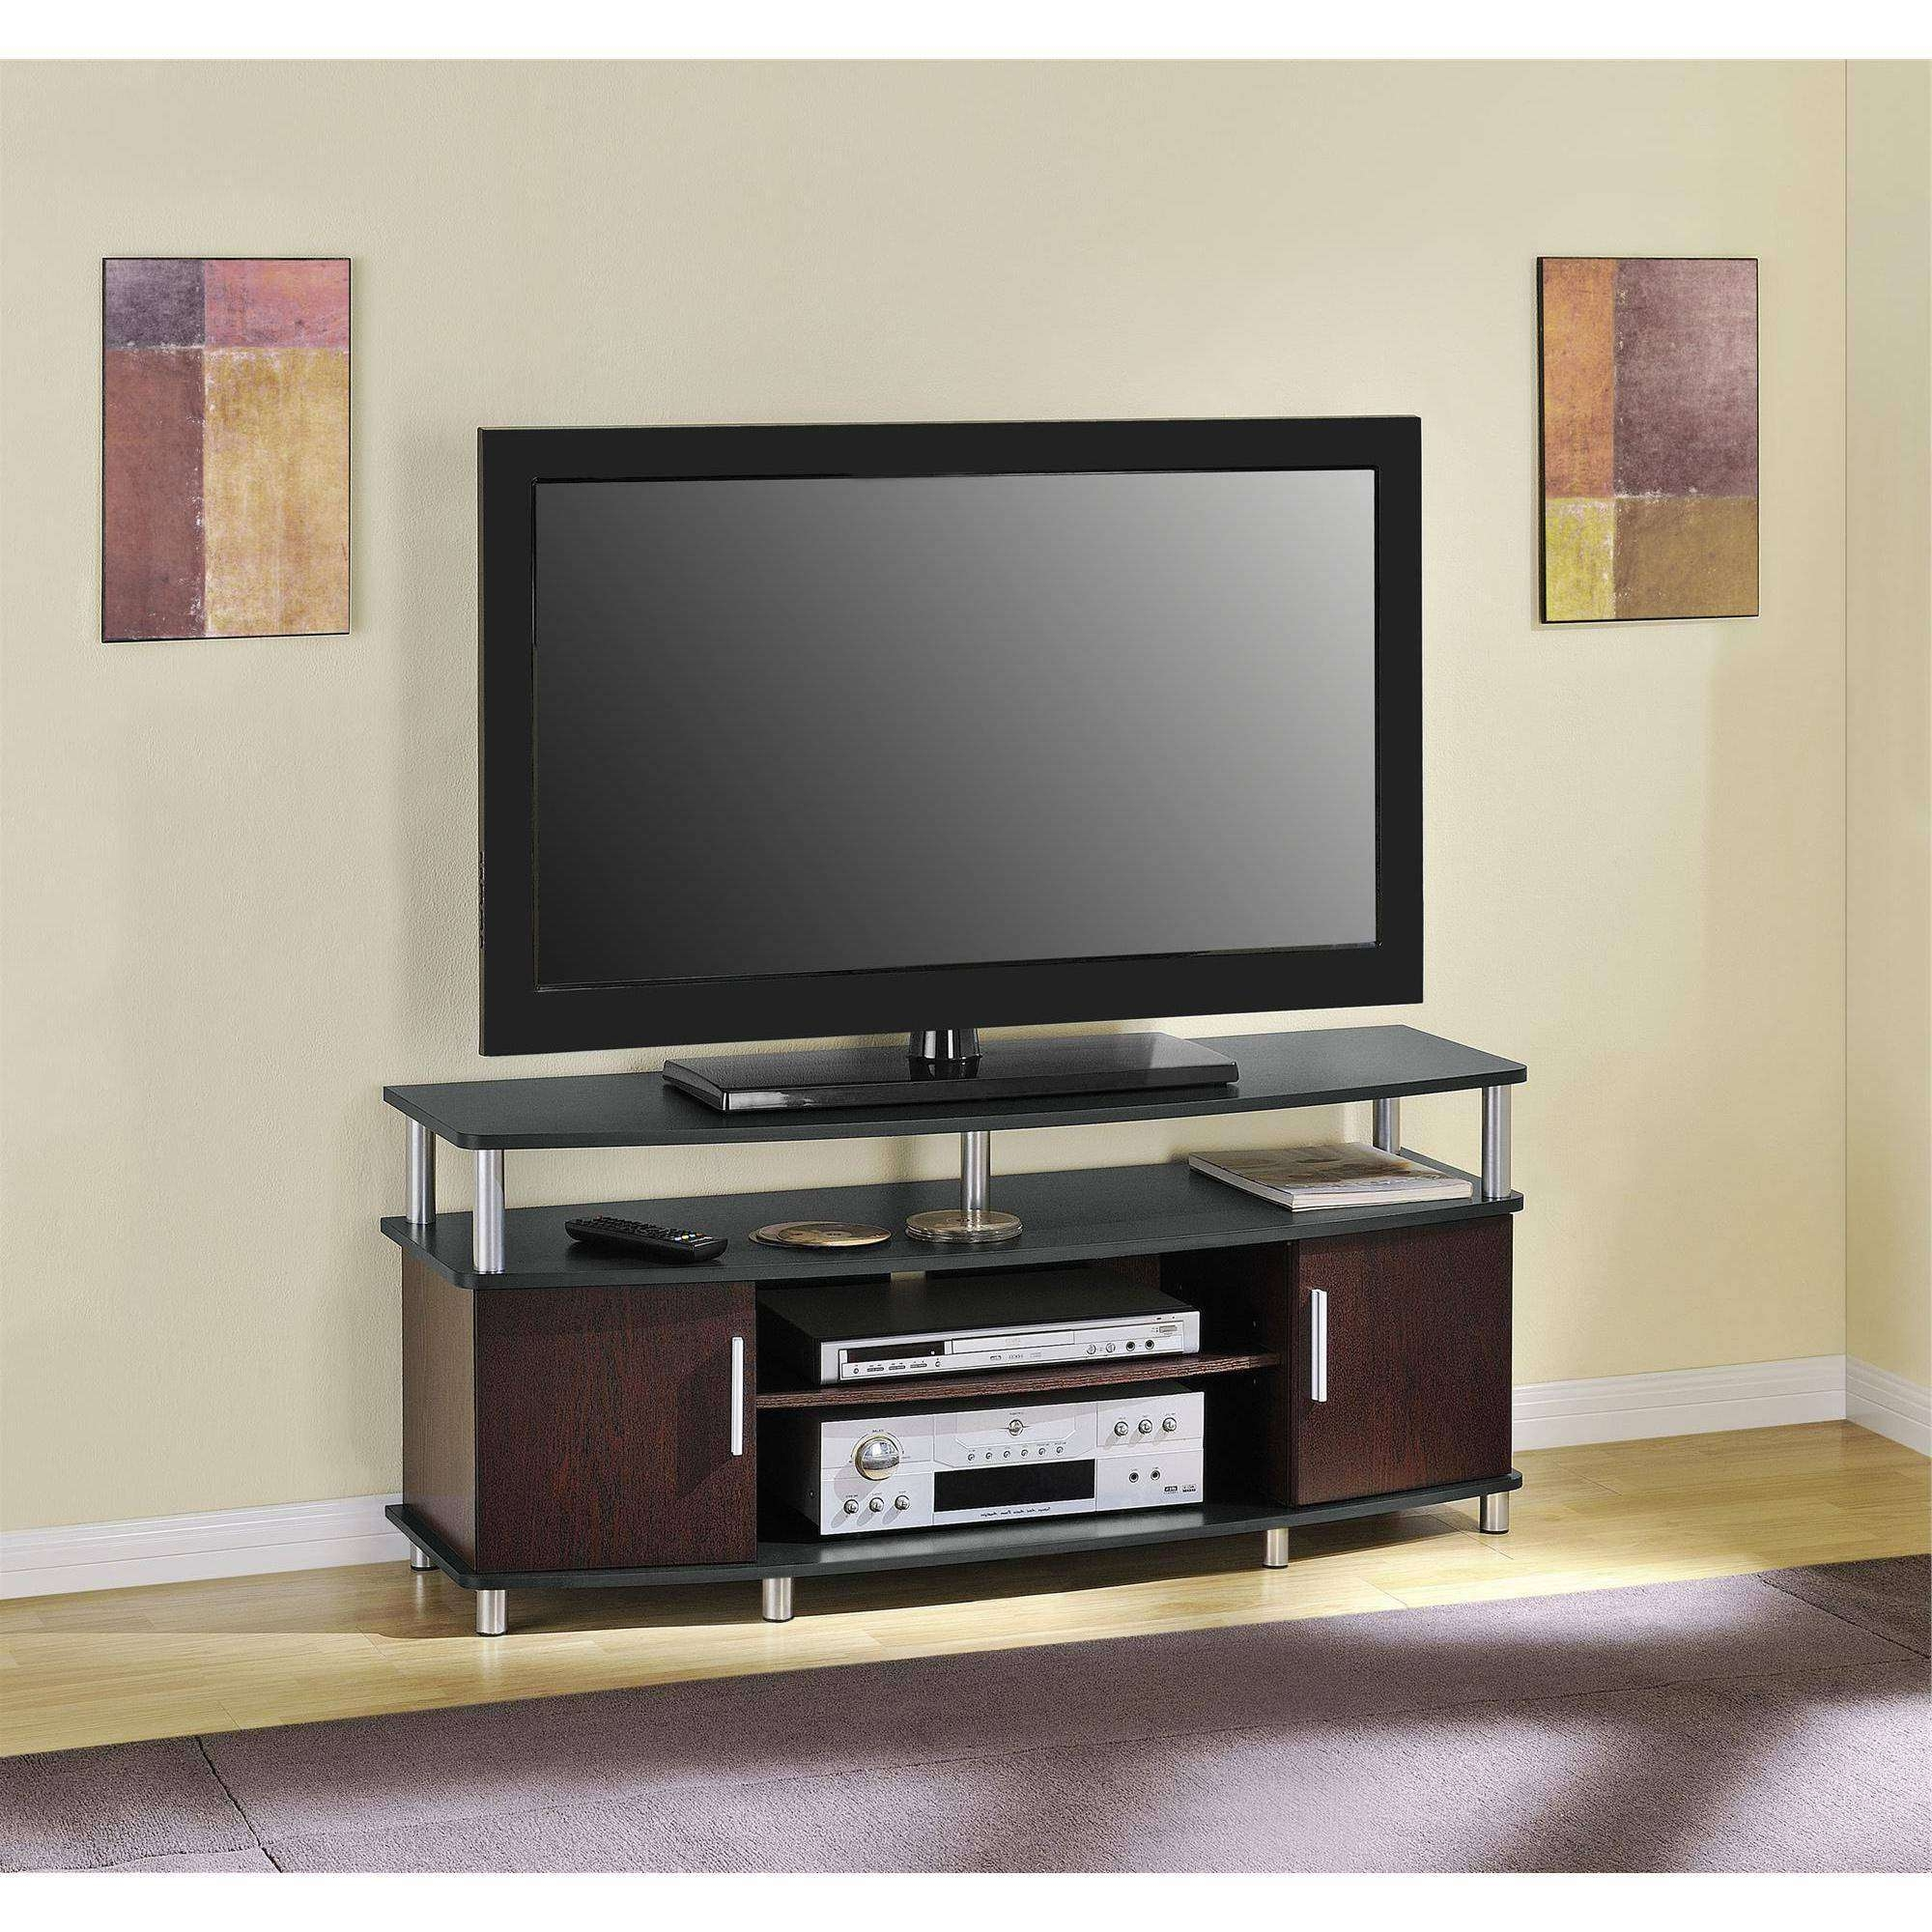 Tv : Rustic 60 Inch Tv Stands Dramatic Rustic 60 Inch Tv Stands With Regard To Rustic 60 Inch Tv Stands (View 5 of 15)